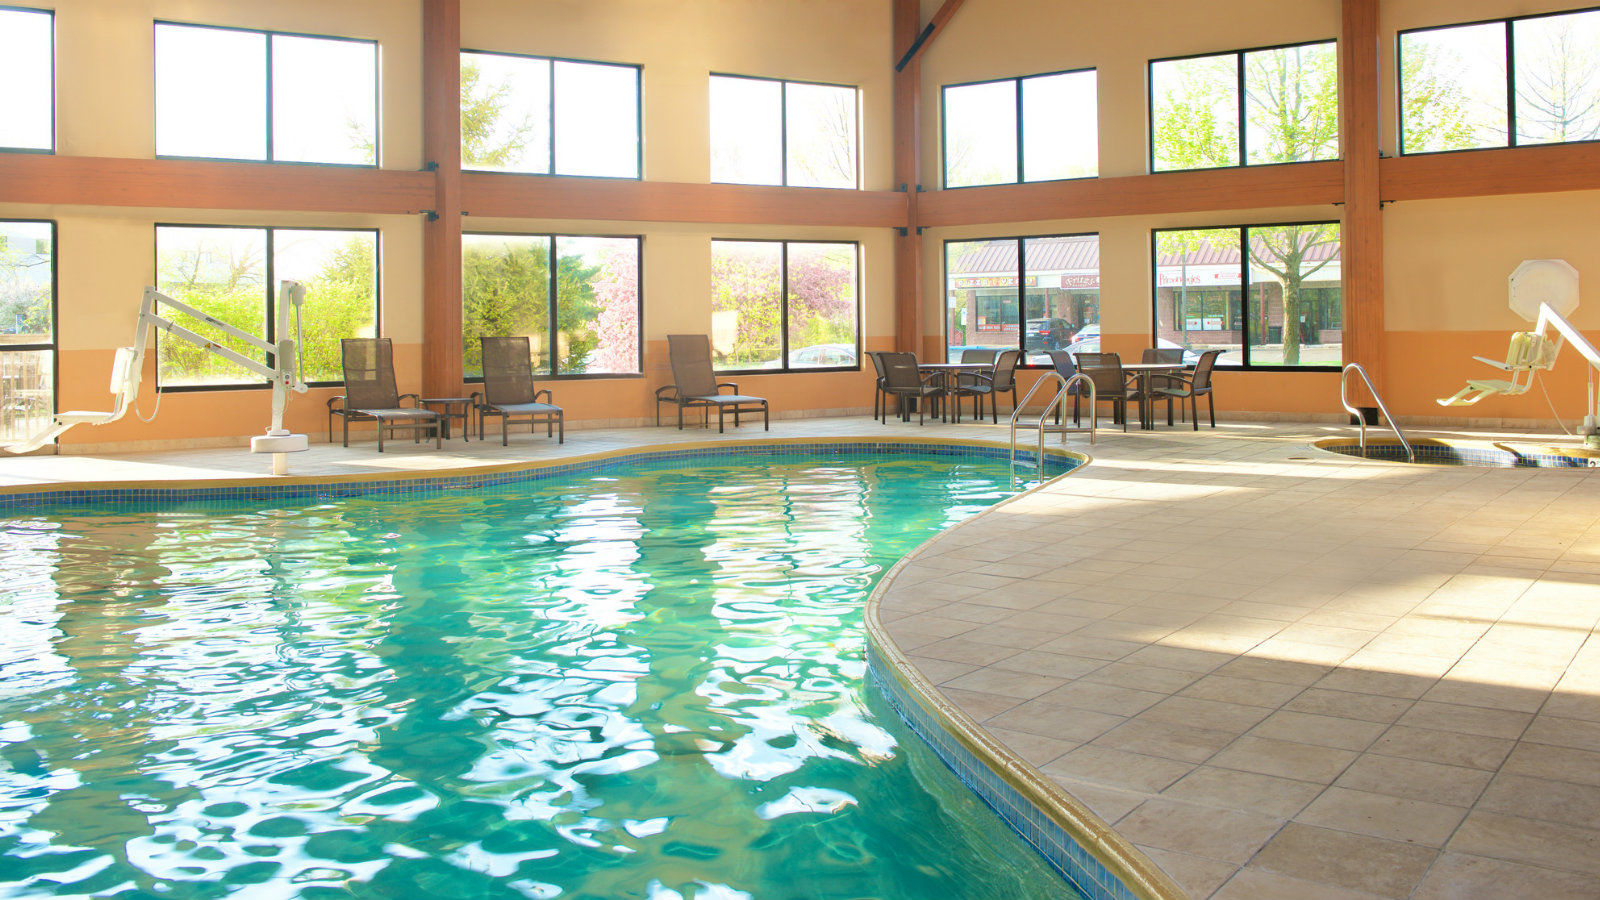 Hotel Features | Sheraton Bucks County Hotel Swimming Pool